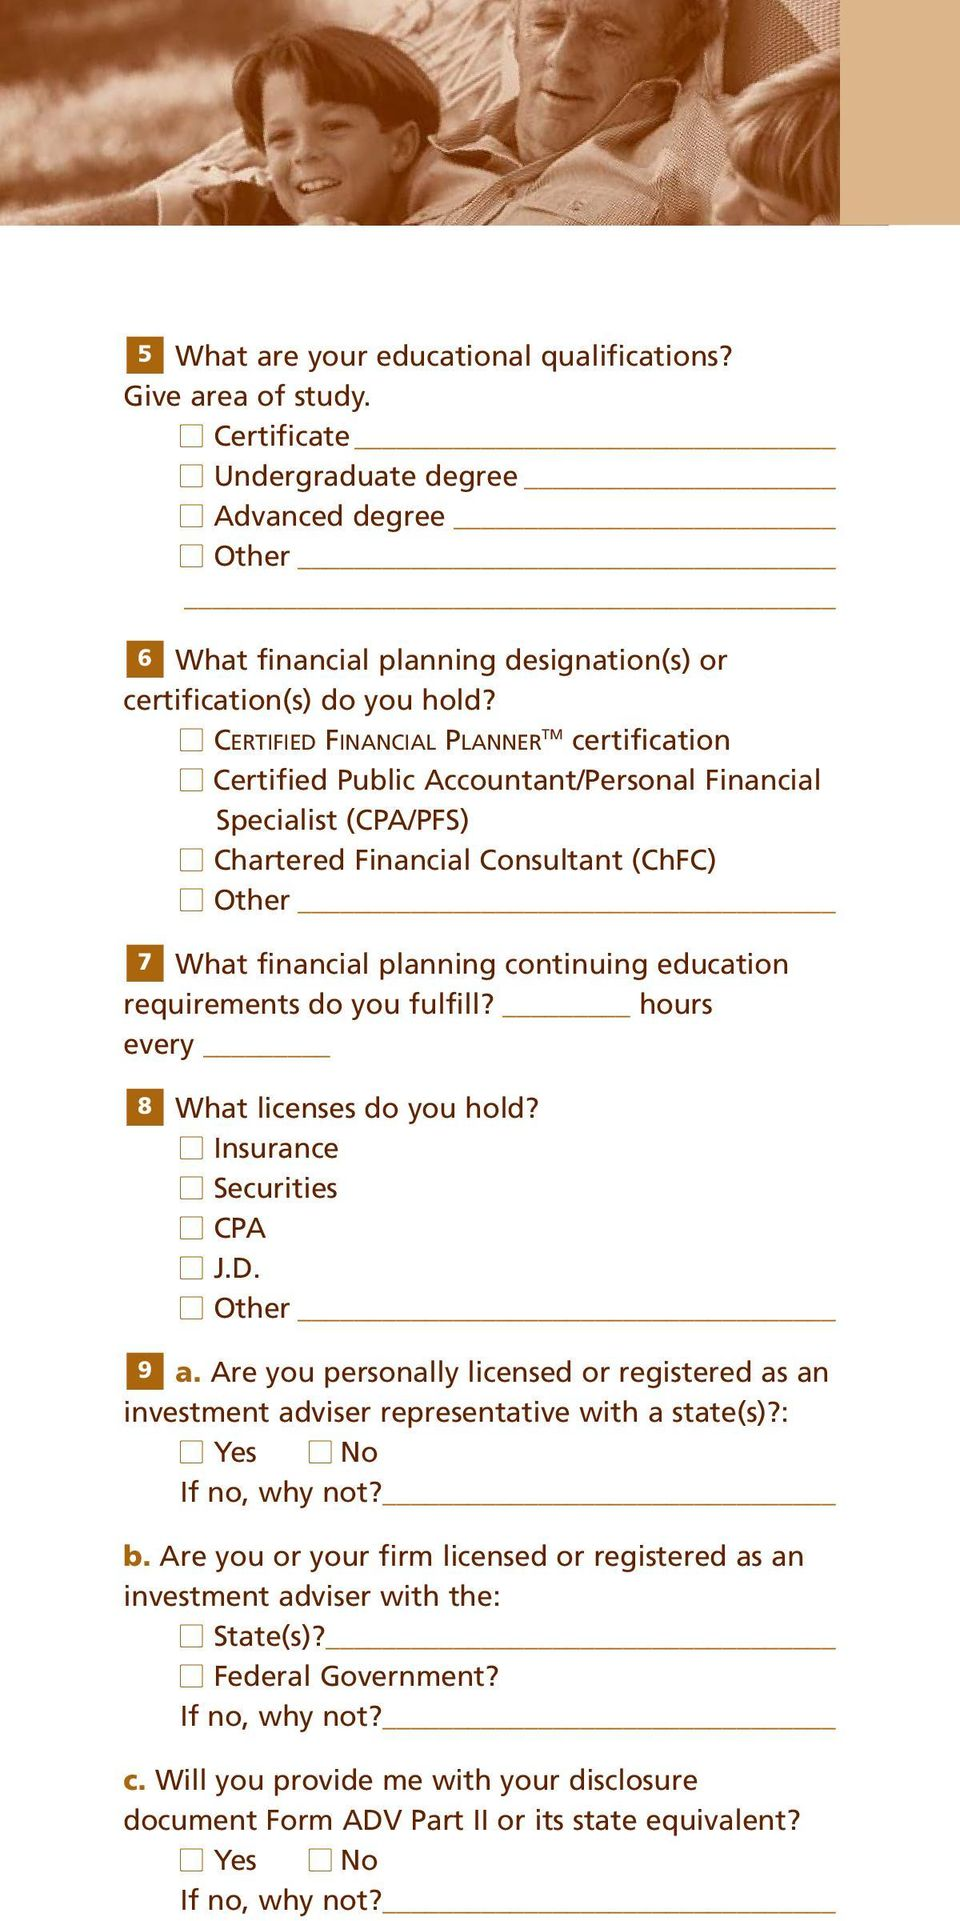 education requirements do you fulfill? hours every 8 What licenses do you hold? Insurance Securities CPA J.D. Other 9 a.